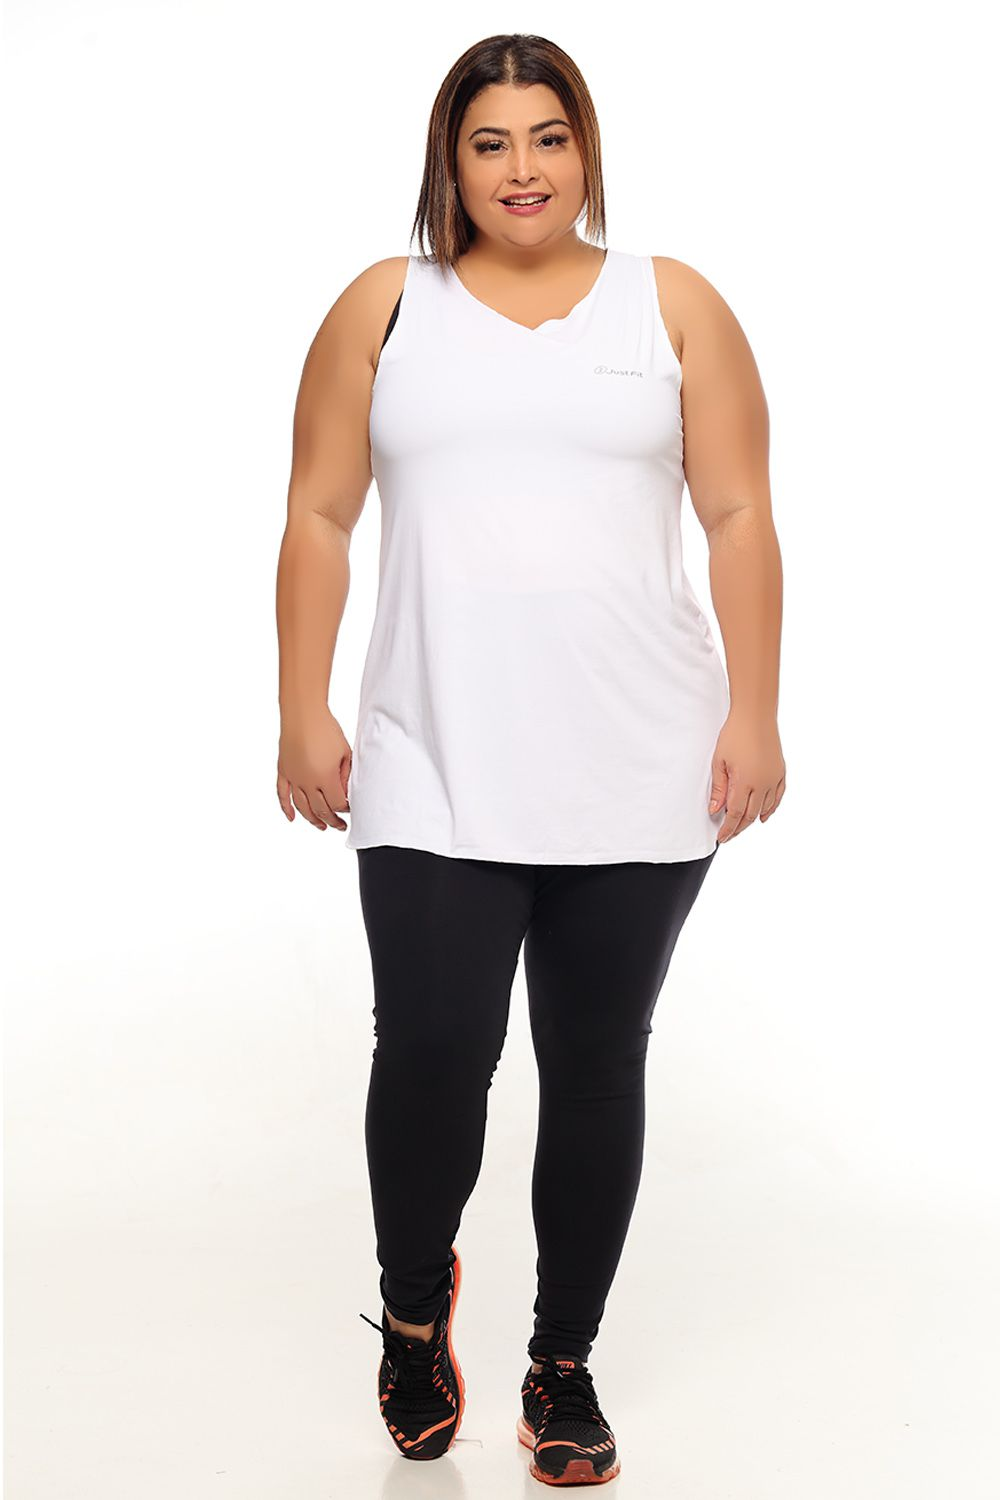 REGATA FEMININA RECORTE PLUS SIZE